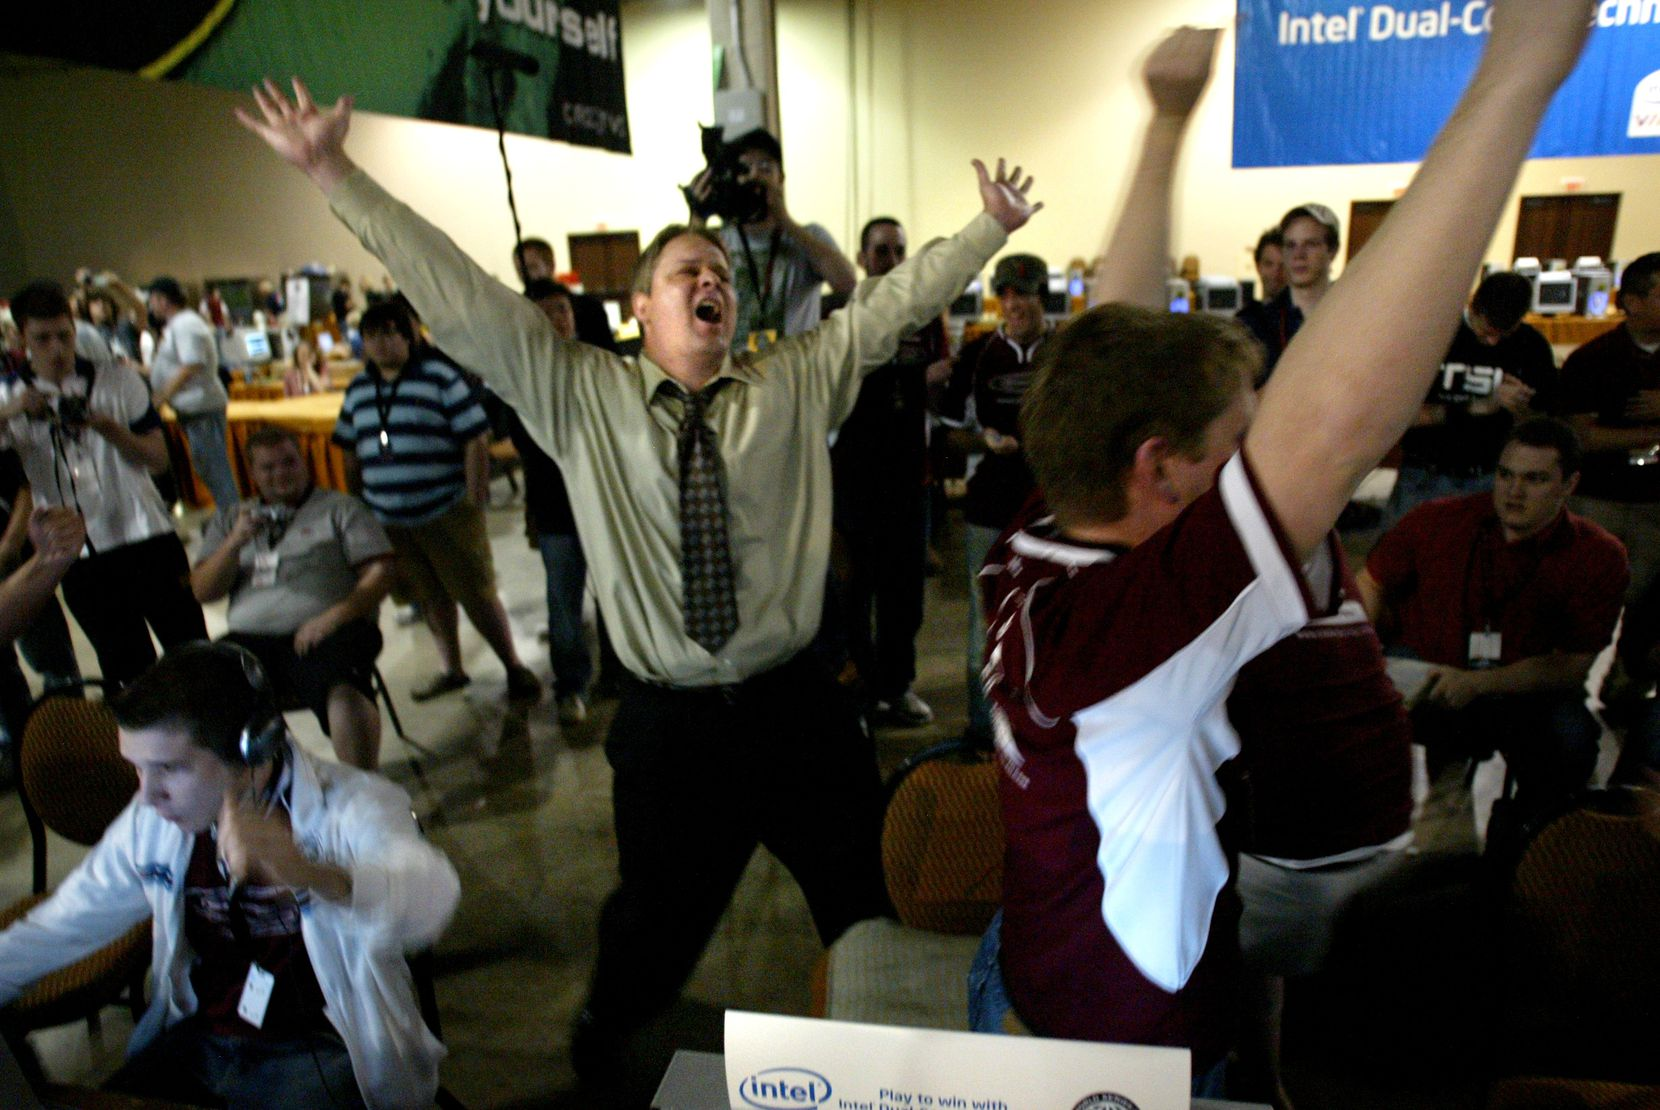 Complexity Gaming founder Jason Lake has been embedded in esports for nearly two decades. He's pictured here in 2006, celebrating his team's Counter Strike 1.6 championship at the World Series of Video Games.